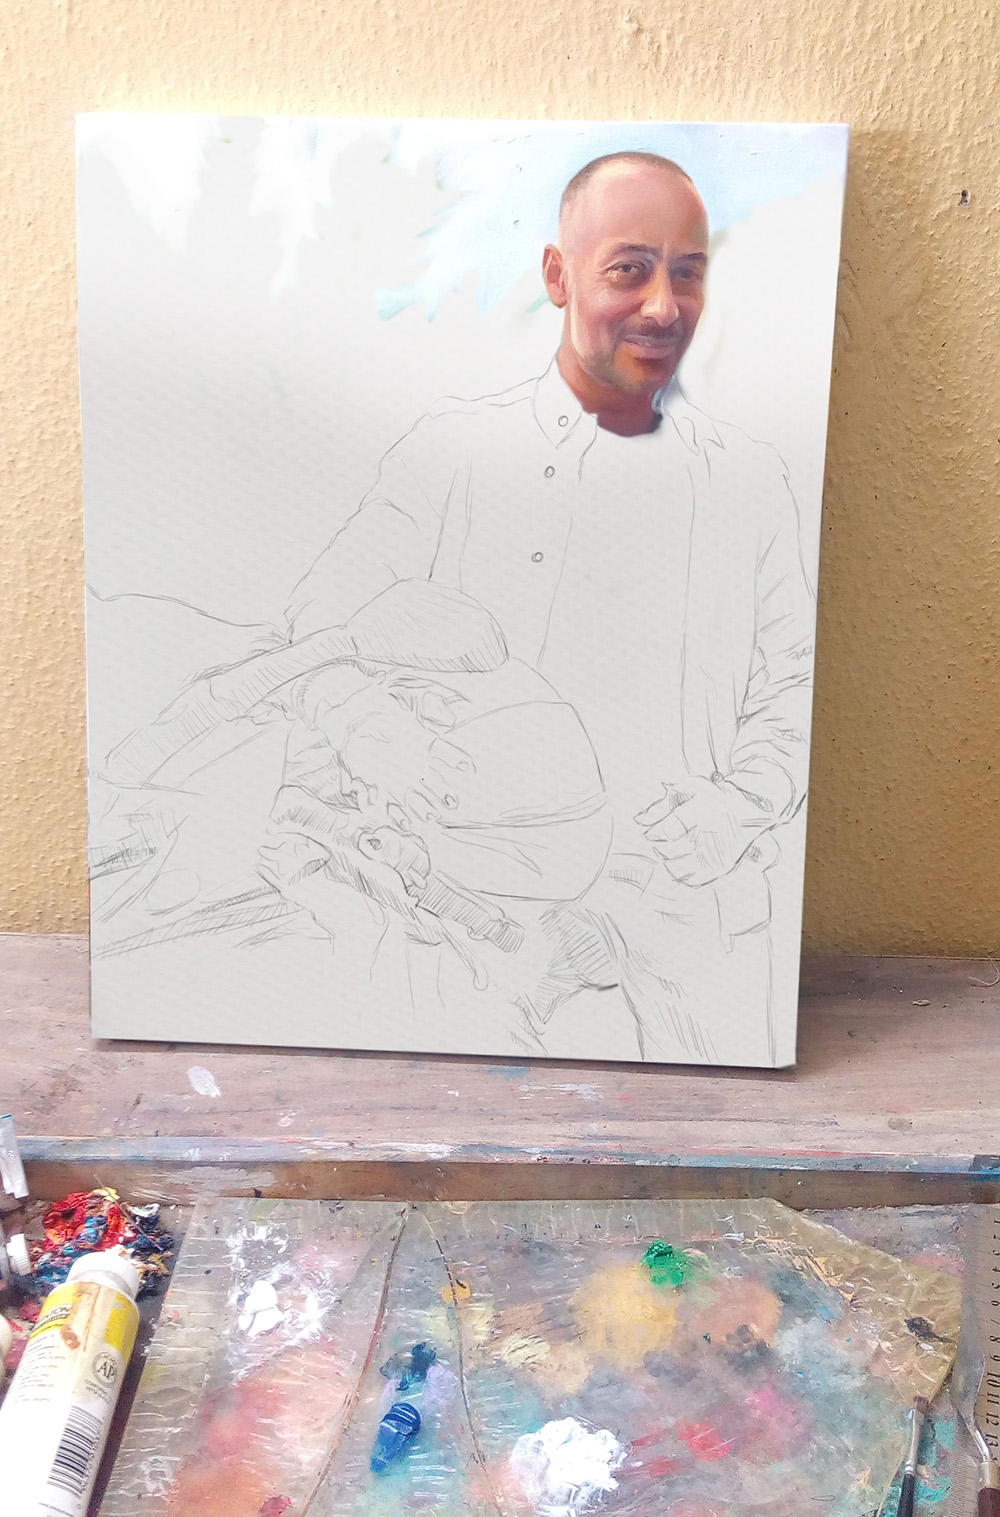 painting in progressIMG 20160314 000541 Realistic portrait painting of a white man I painted seating on a bike.